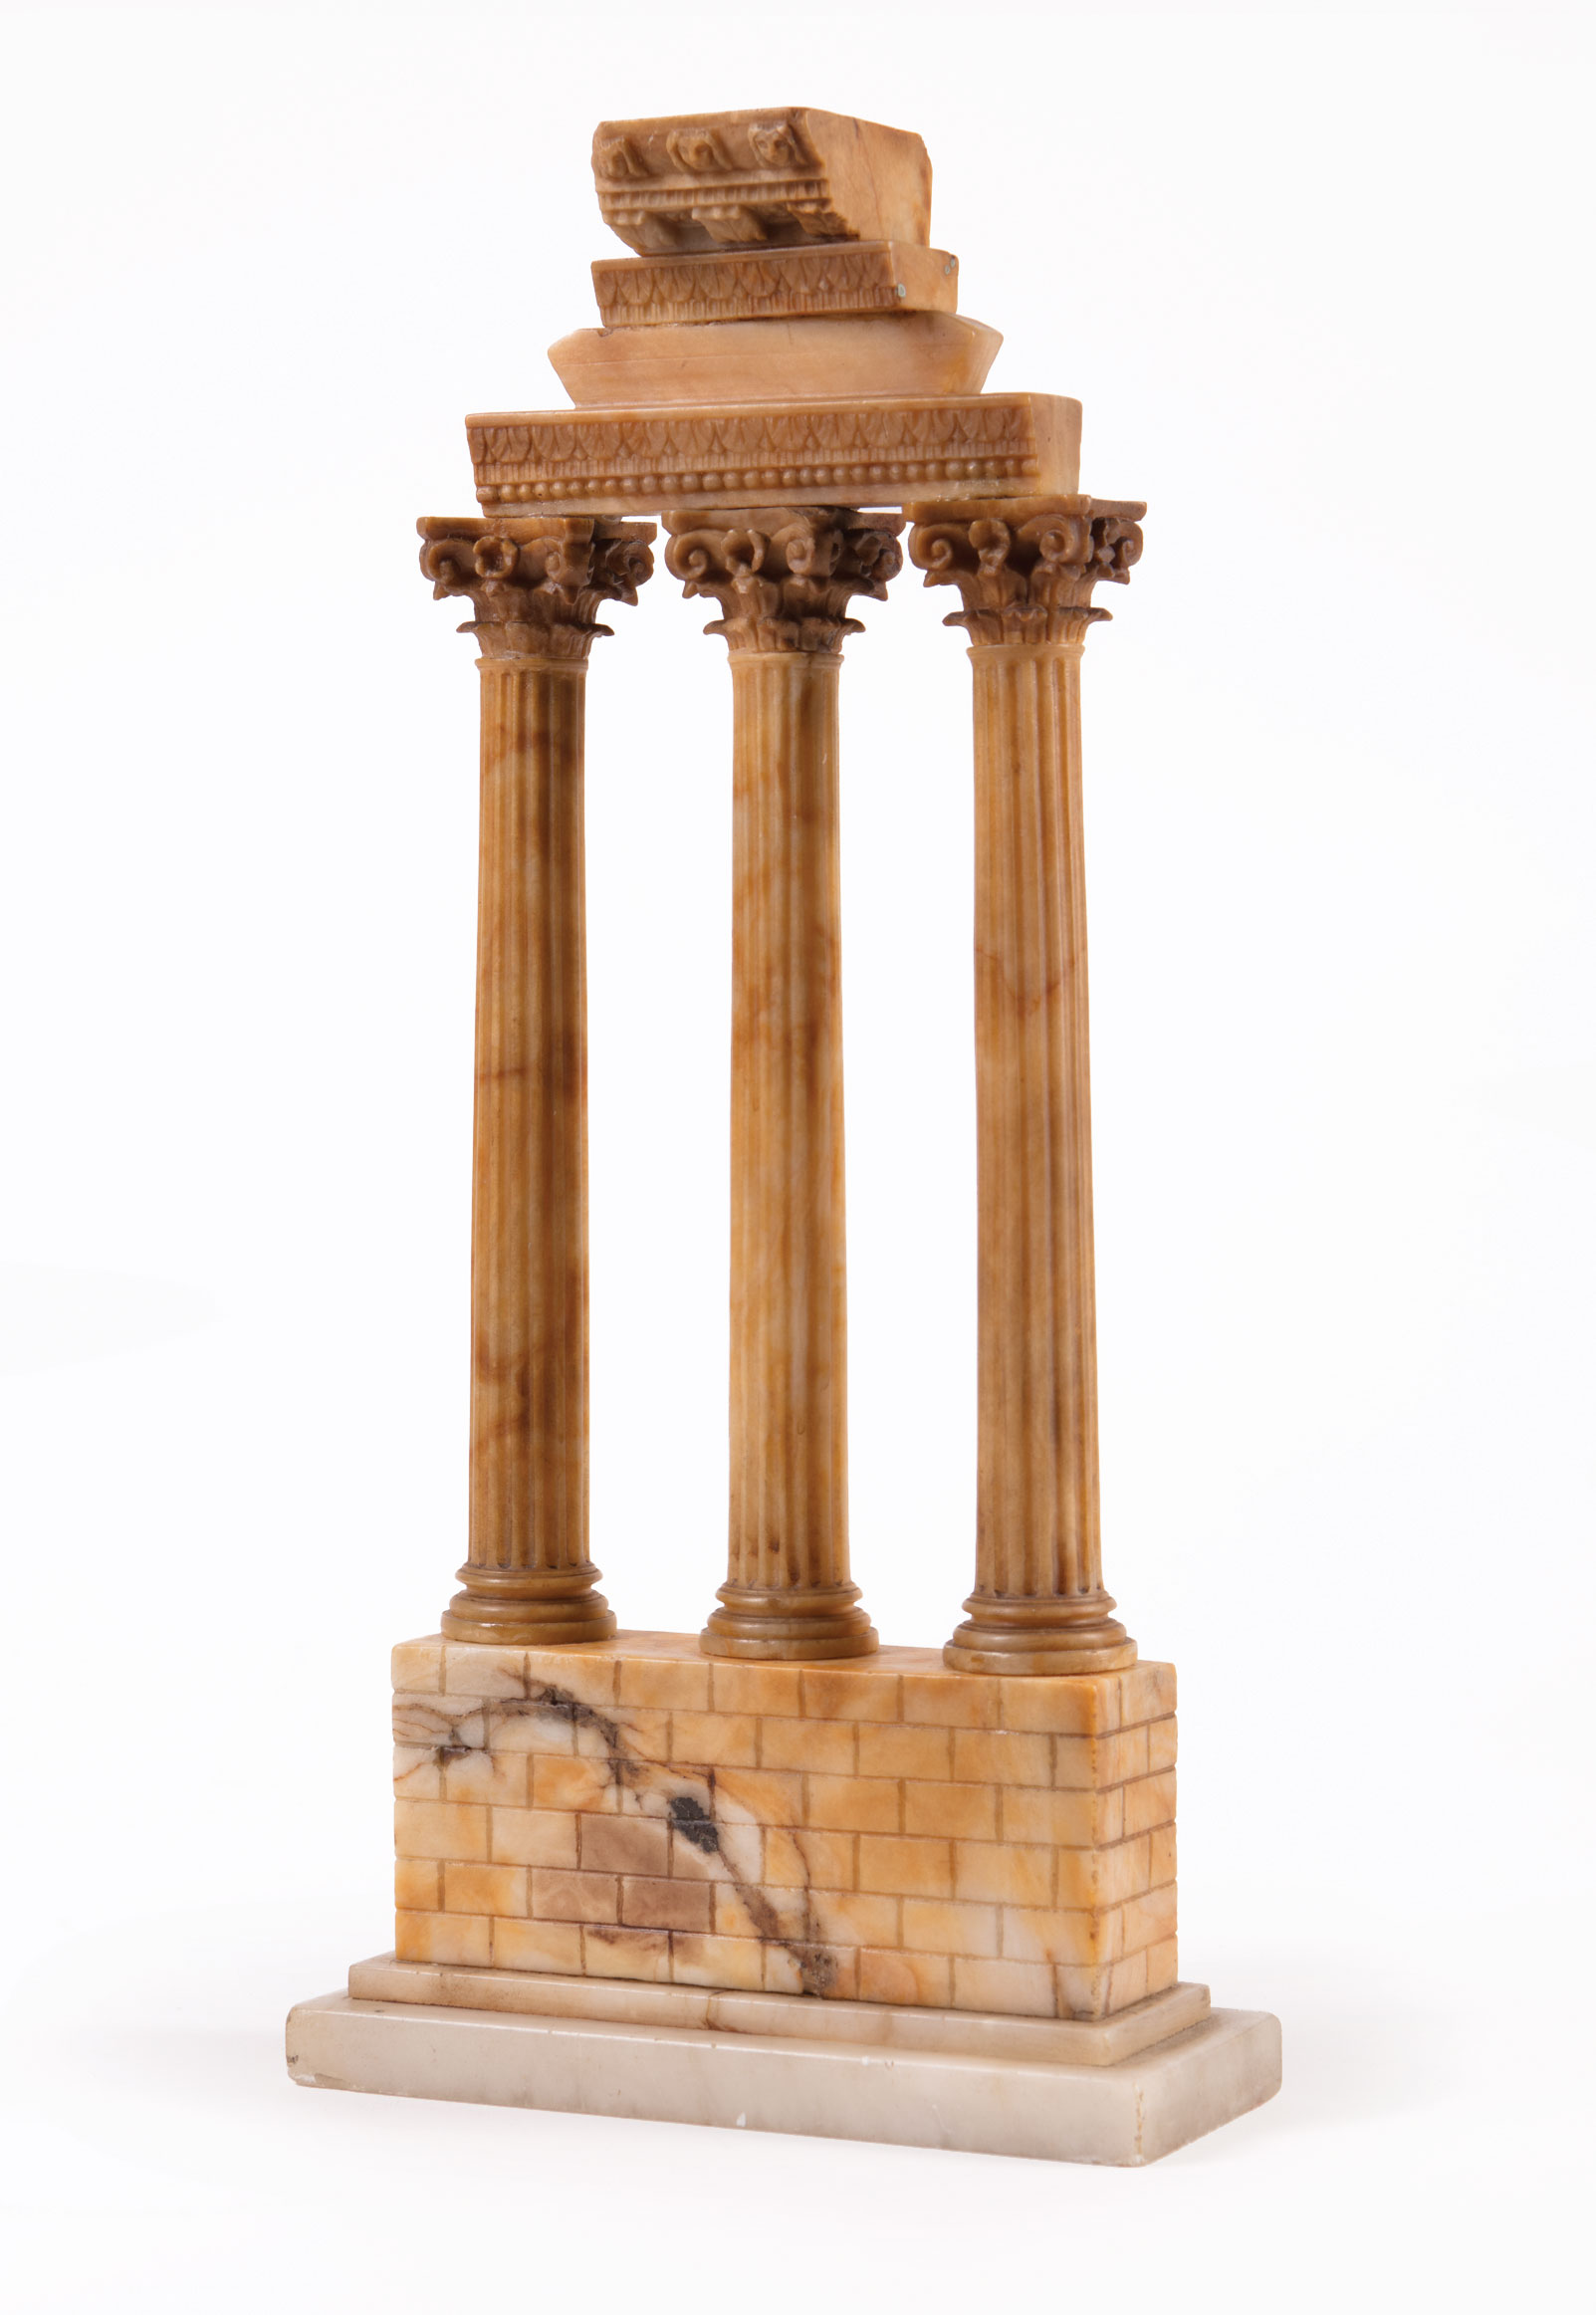 Lot 76 - Grand Tour Sienna Marble Model of the Temple of Castor and Pollux , onyx base, h. 13 in., w. 6 1/4